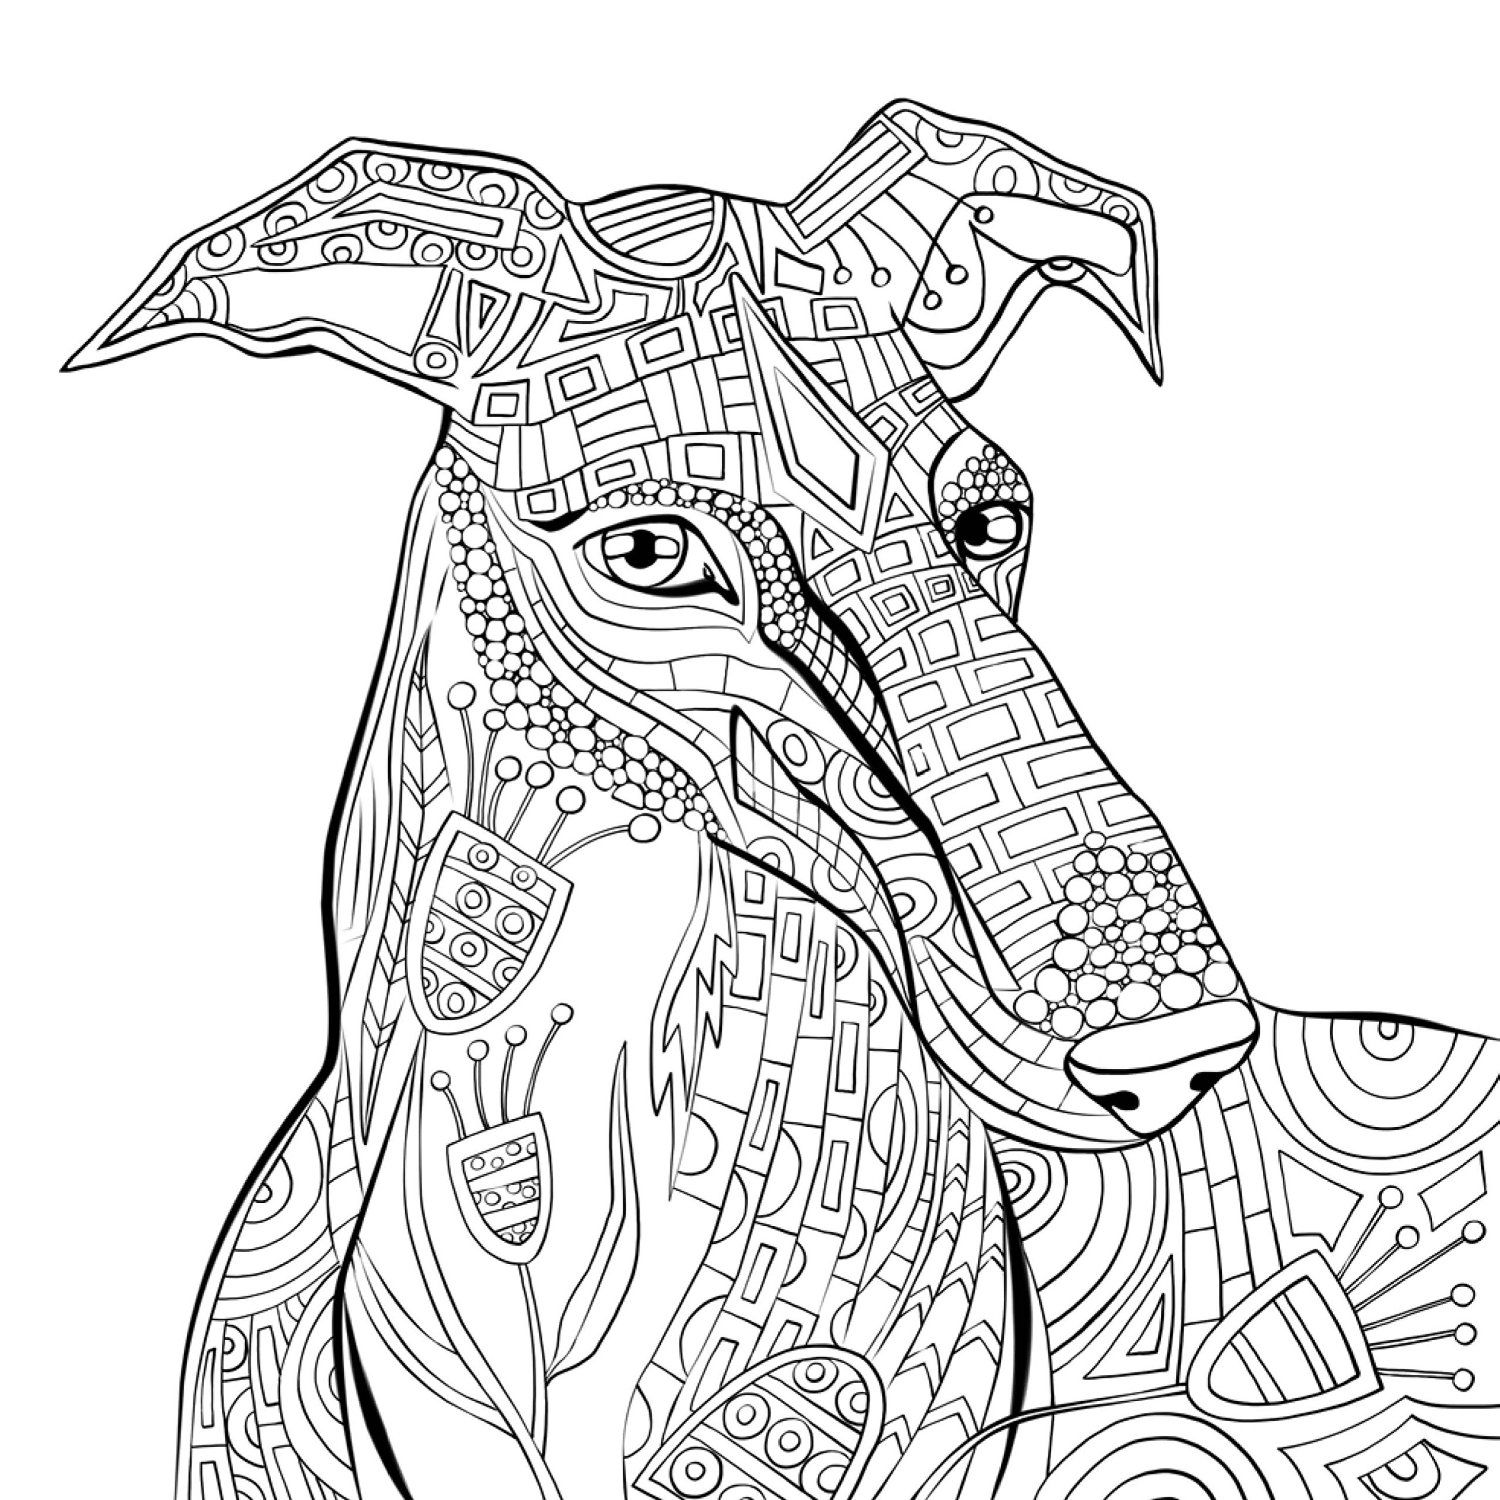 Free Adult Coloring Pages Greyhound Coloring Pages Adult